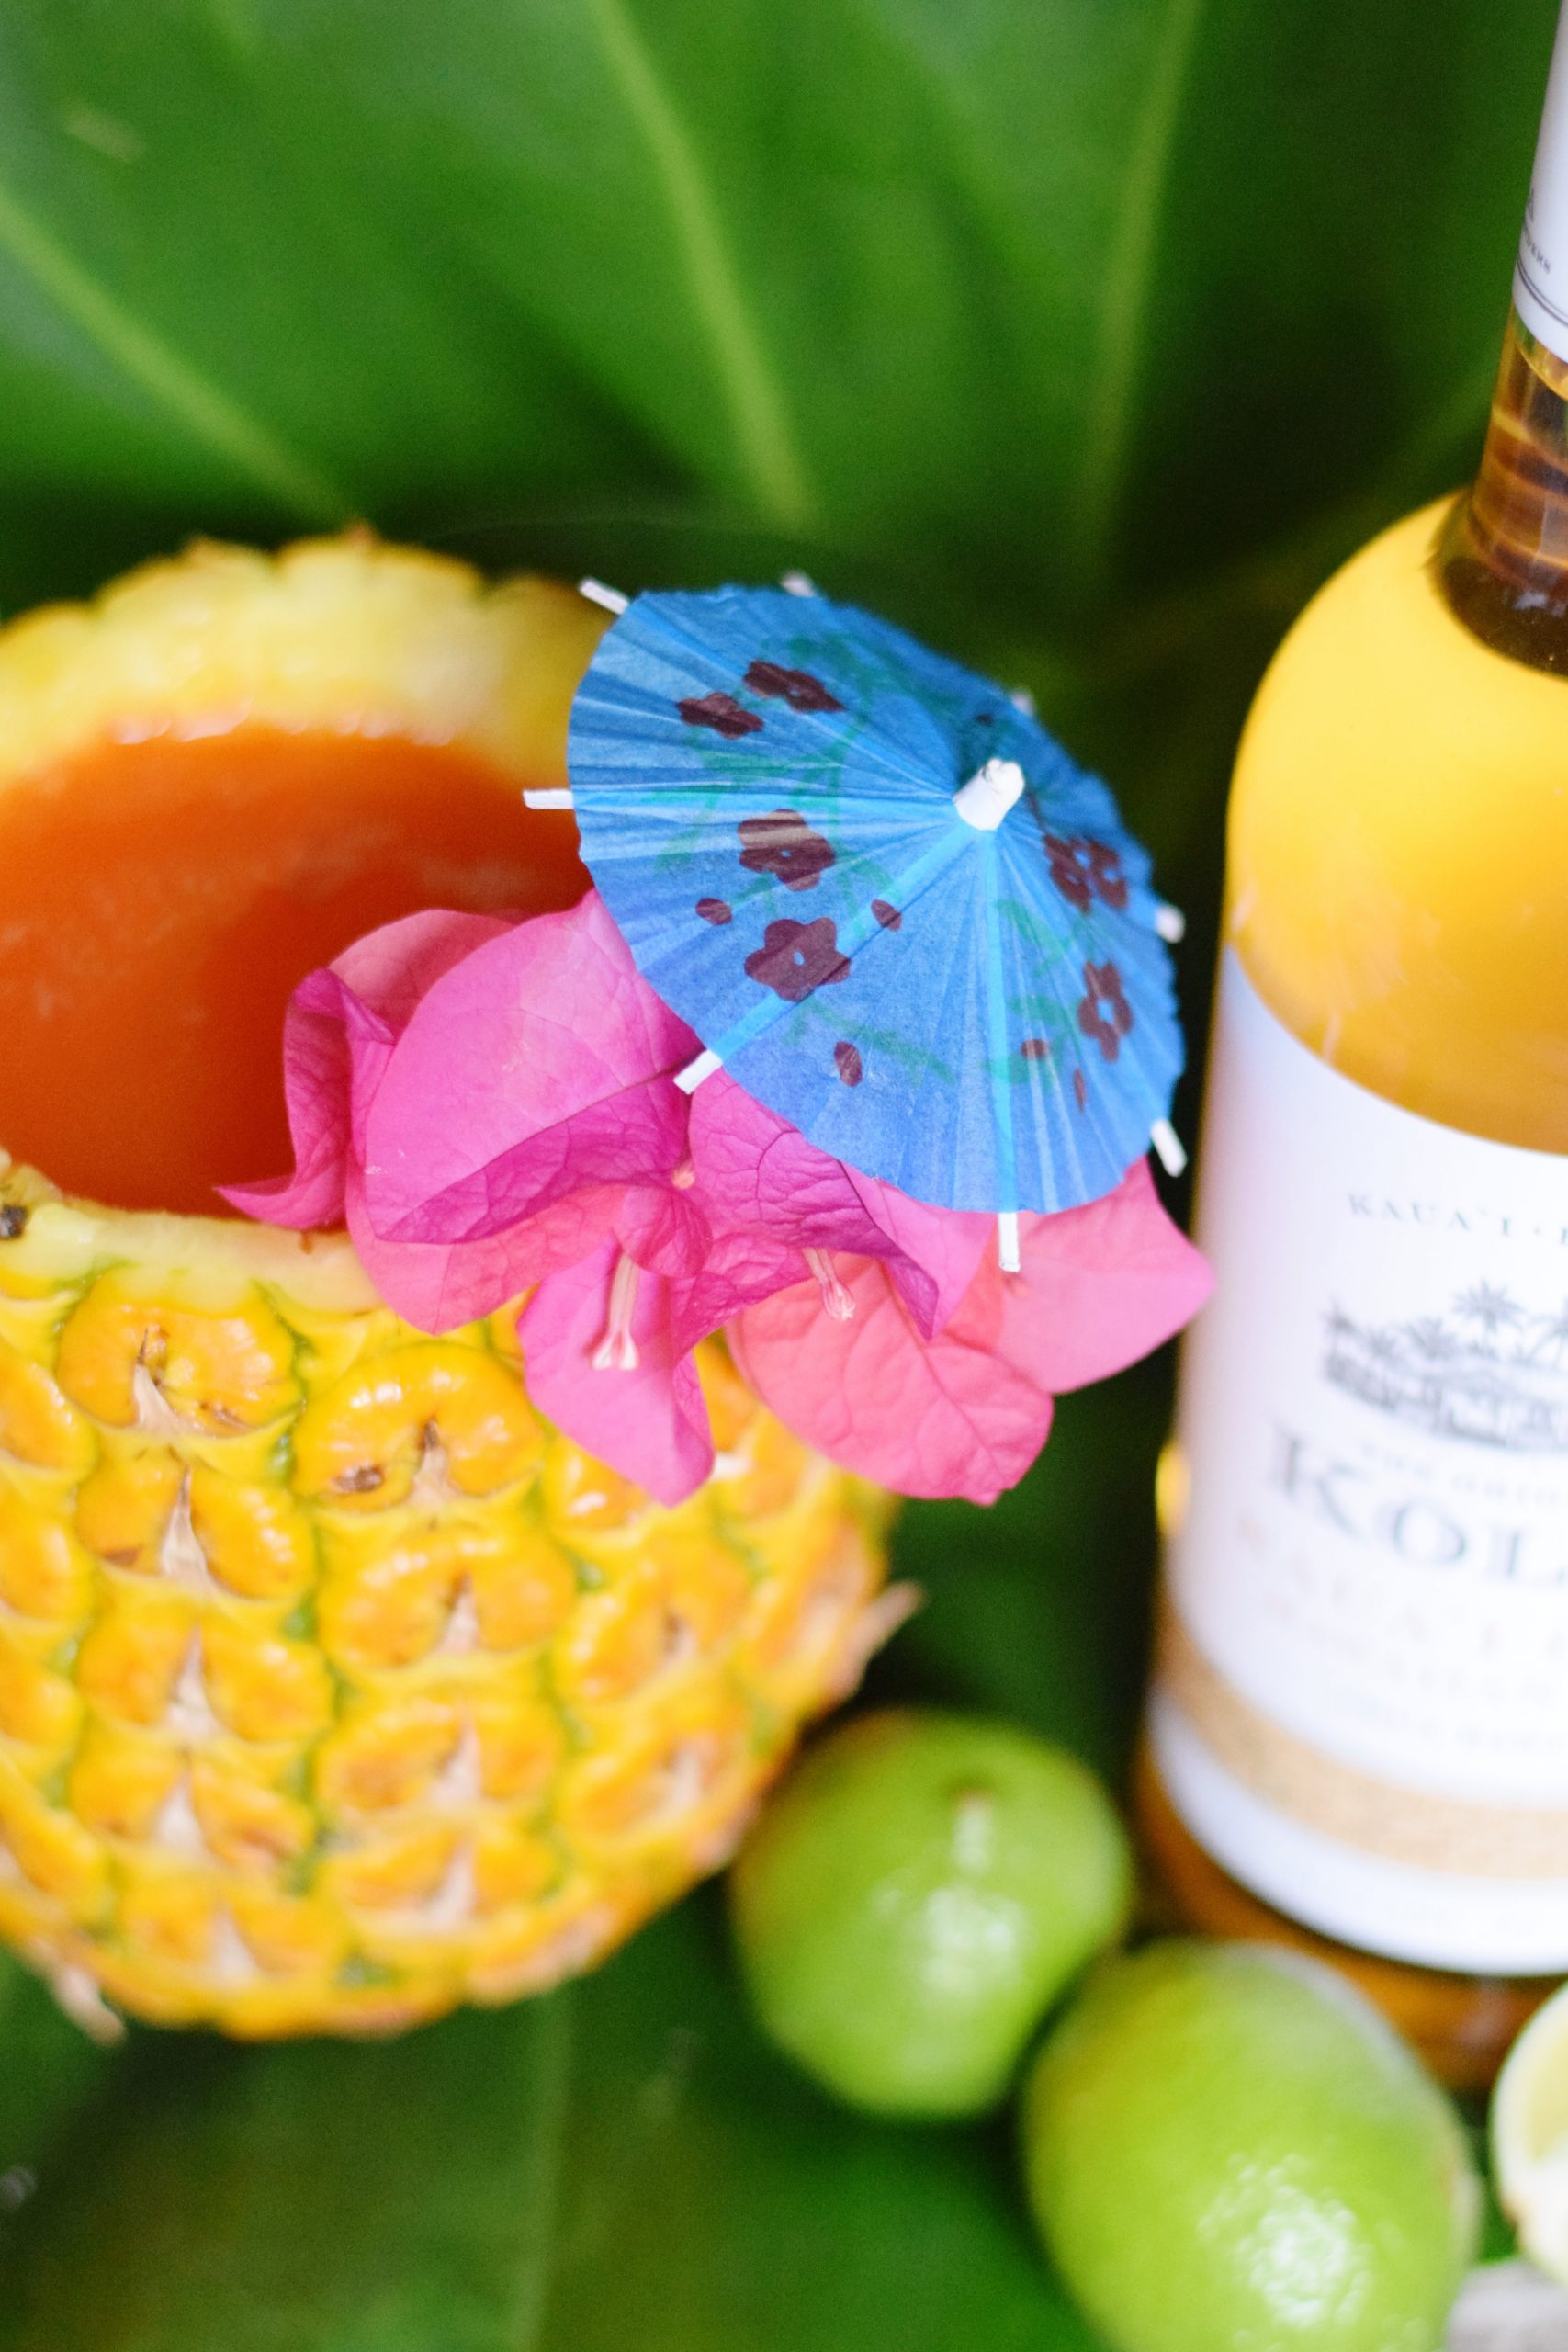 Pacific Painkiller Cocktail With Kōloa Rum - A delicious mix of tropical juices and three types of Kōloa Rum, makes this the ultimate painkiller cocktail recipe! - Painkiller Cocktail Recipe - Painkiller Cocktail - Kōloa Rum - Kōloa Rum cocktail idea - Hawaii Tropical cocktail - Cocktail served in a pineapple